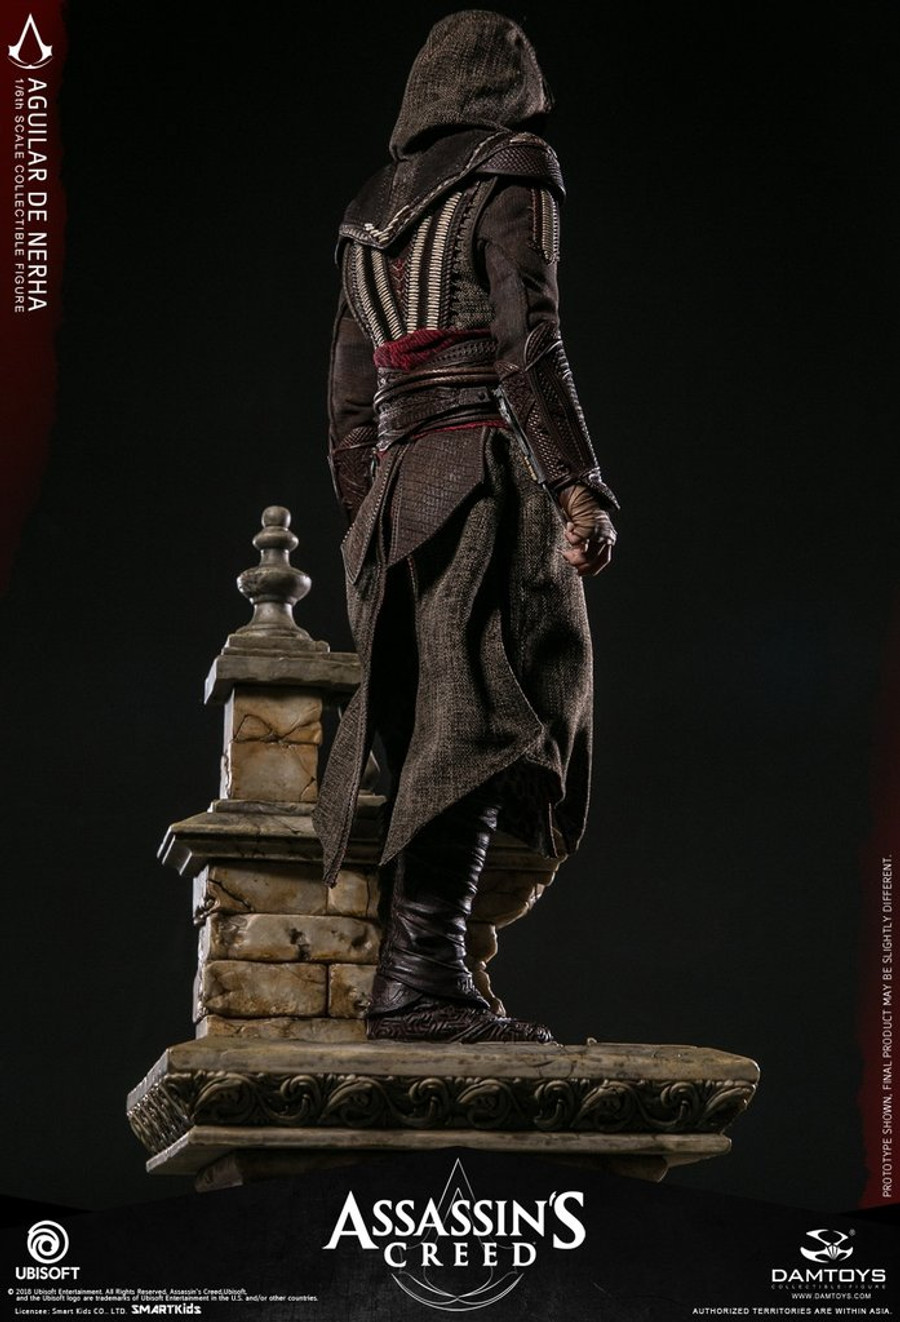 DAM Toys - Assassin's Creed: Aguilar De Nerha